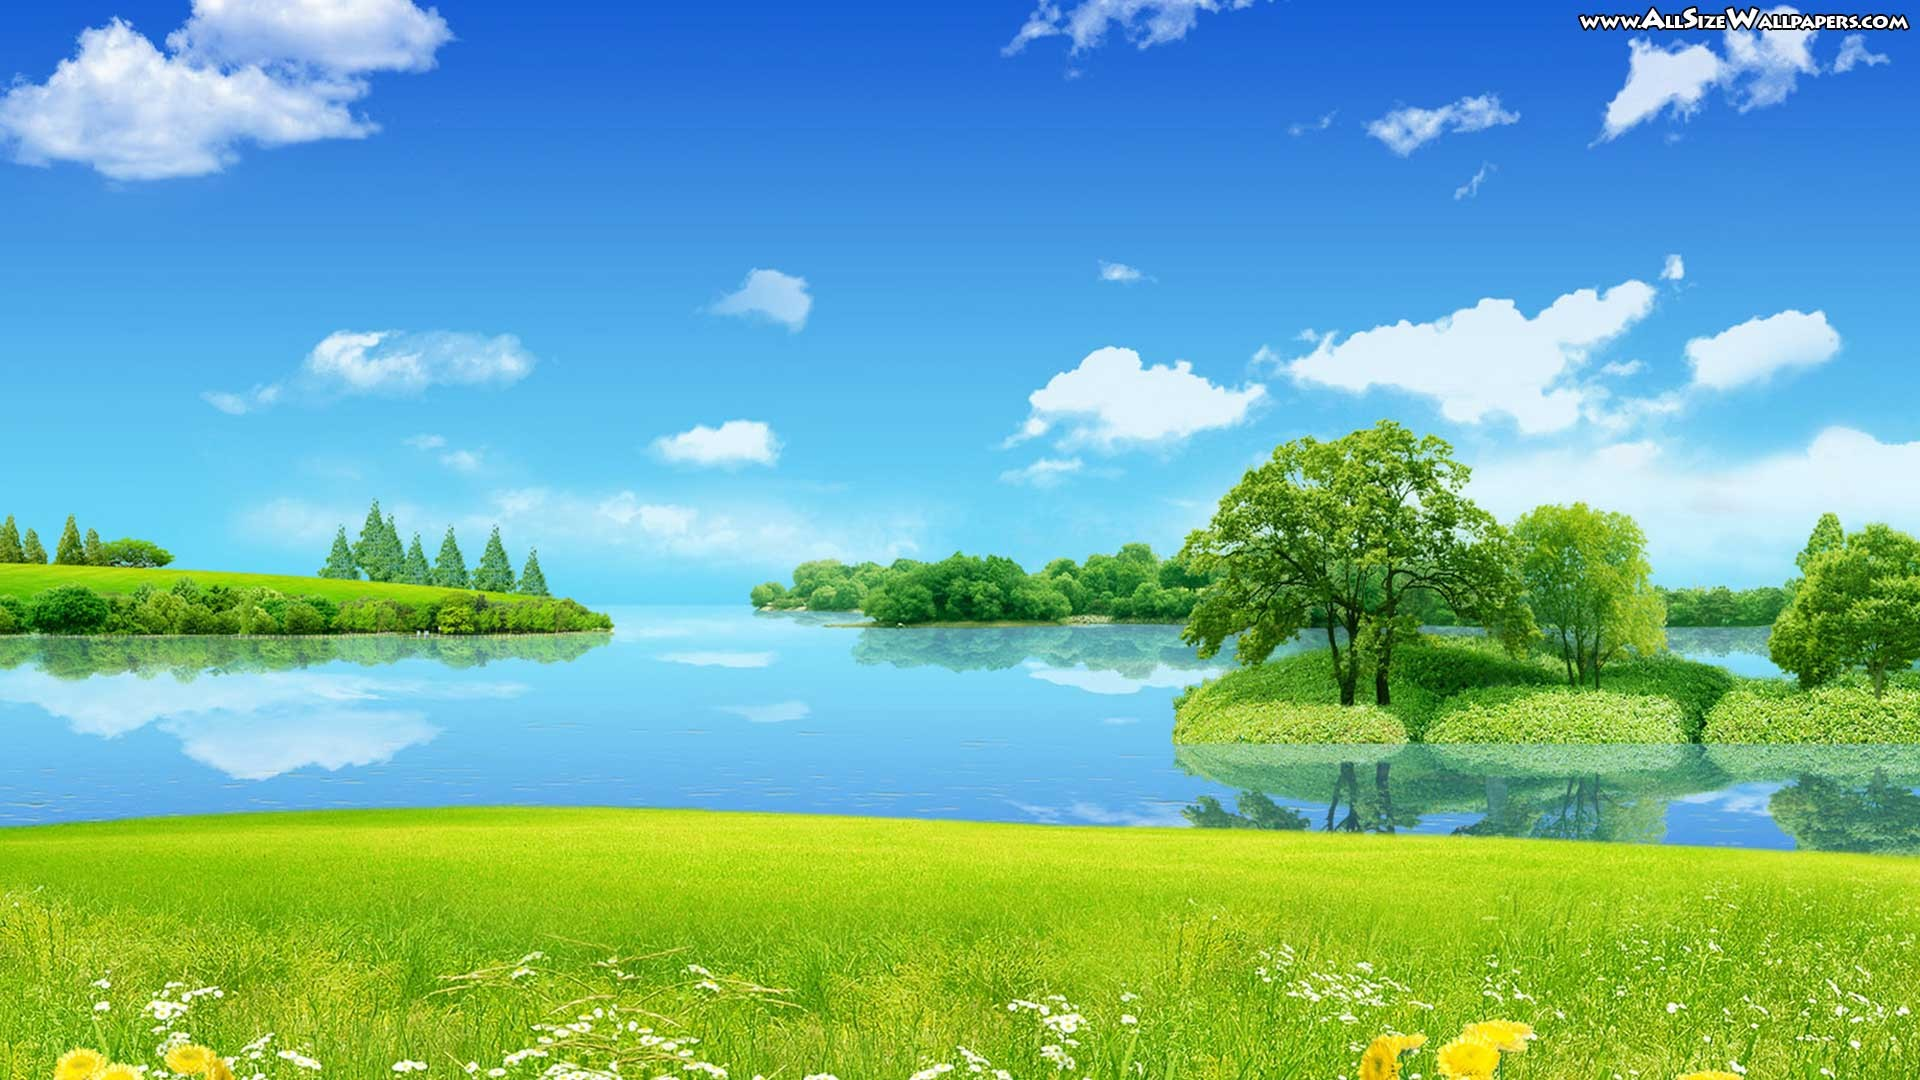 Nature Background ·â' Download Free Cool HD Backgrounds For